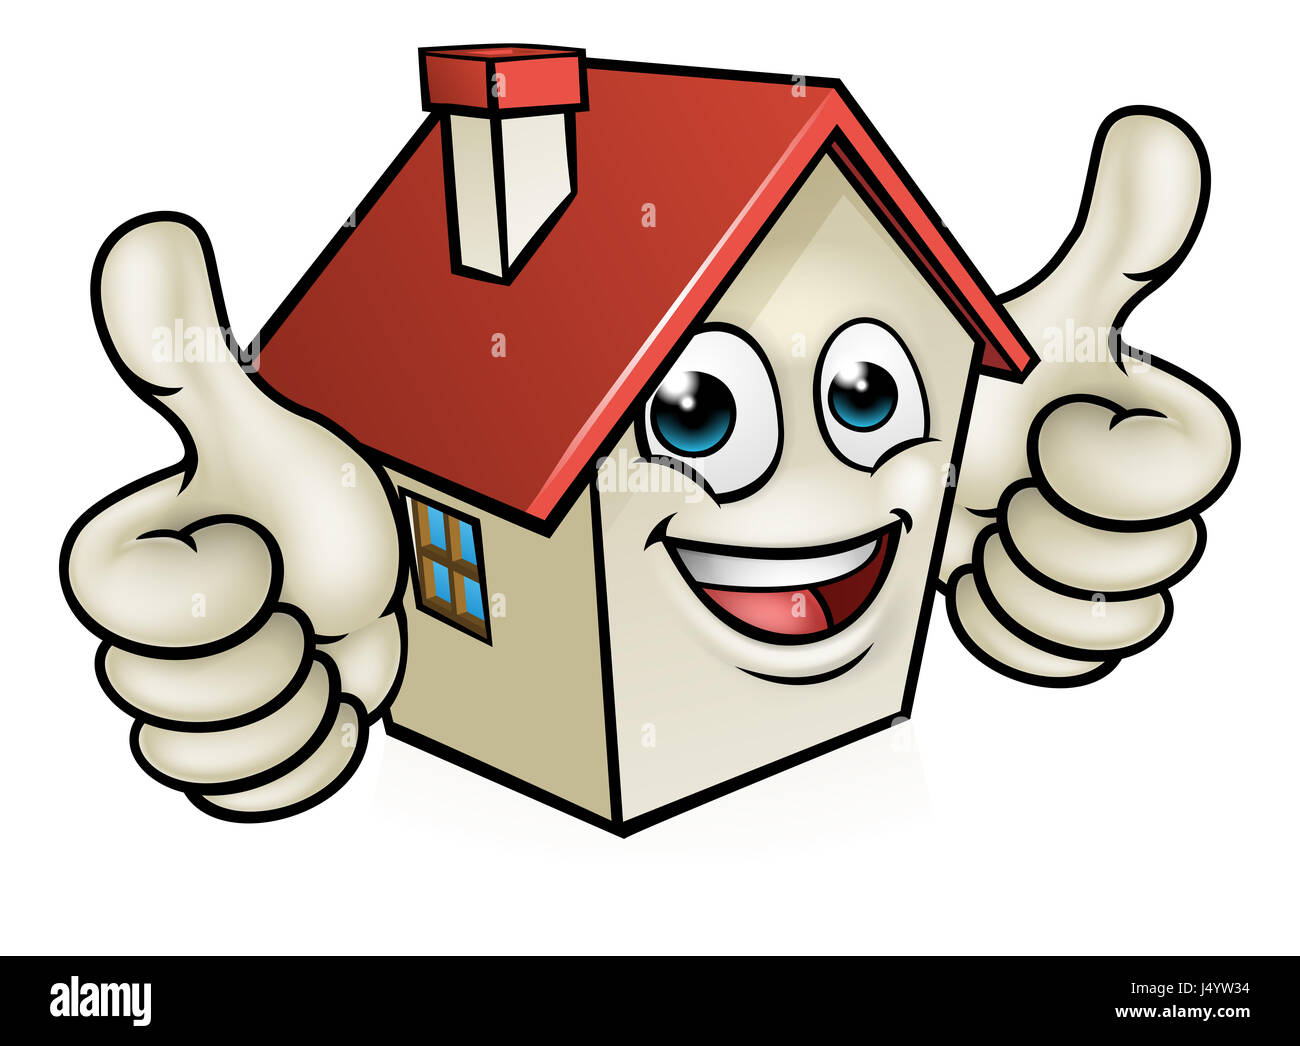 Cartoon Characters Houses : A house cartoon mascot character giving double thumbs up